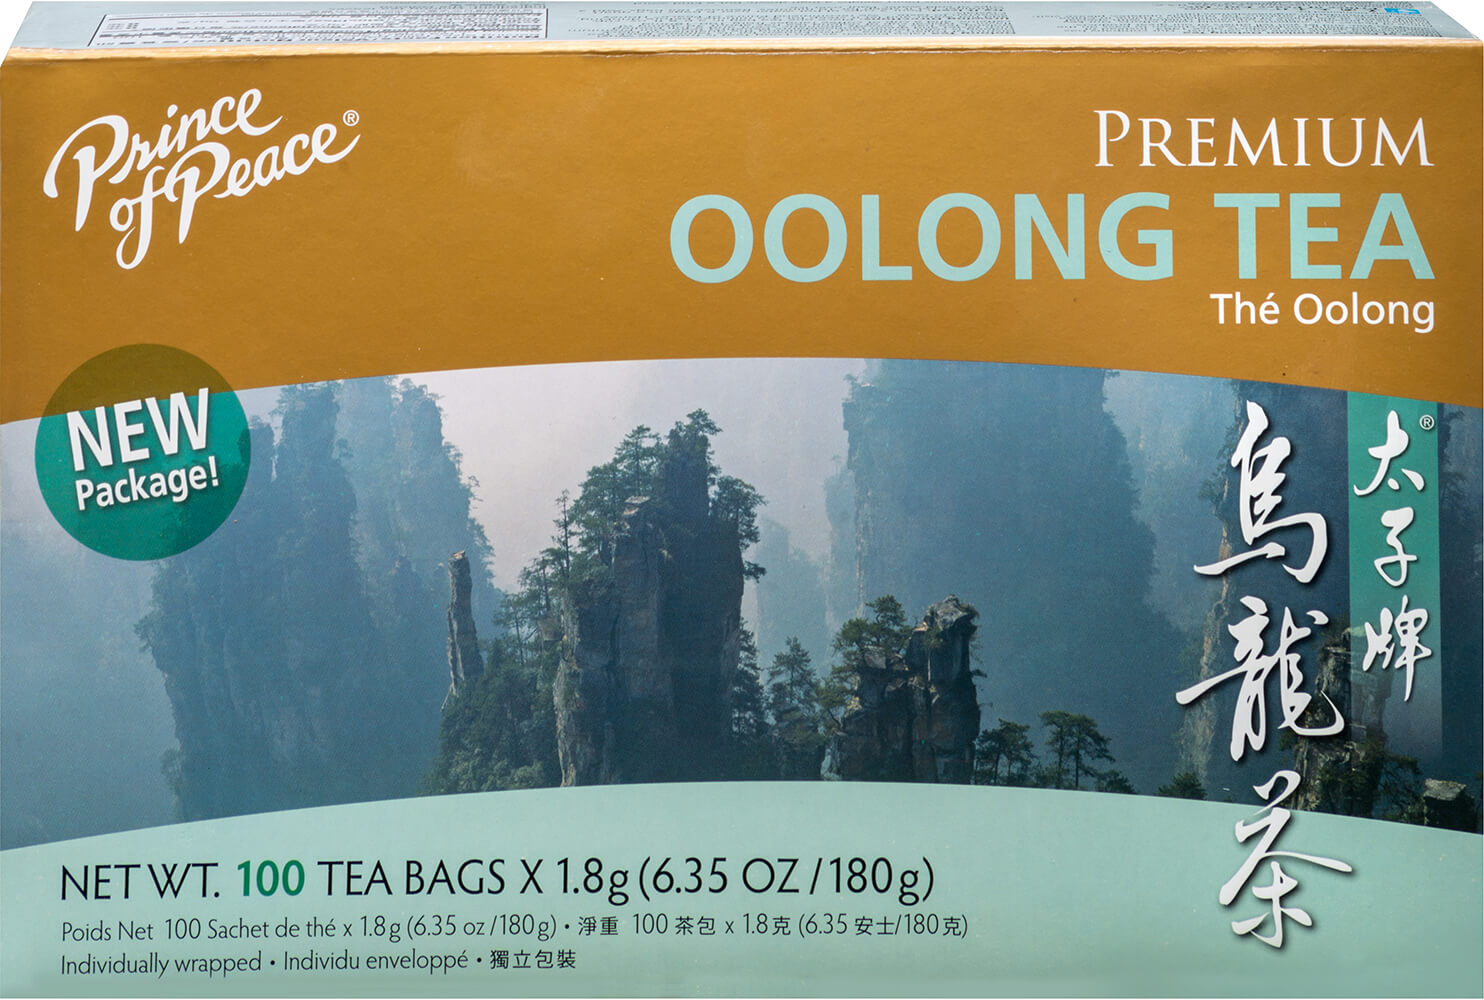 Premium Oolong Tea